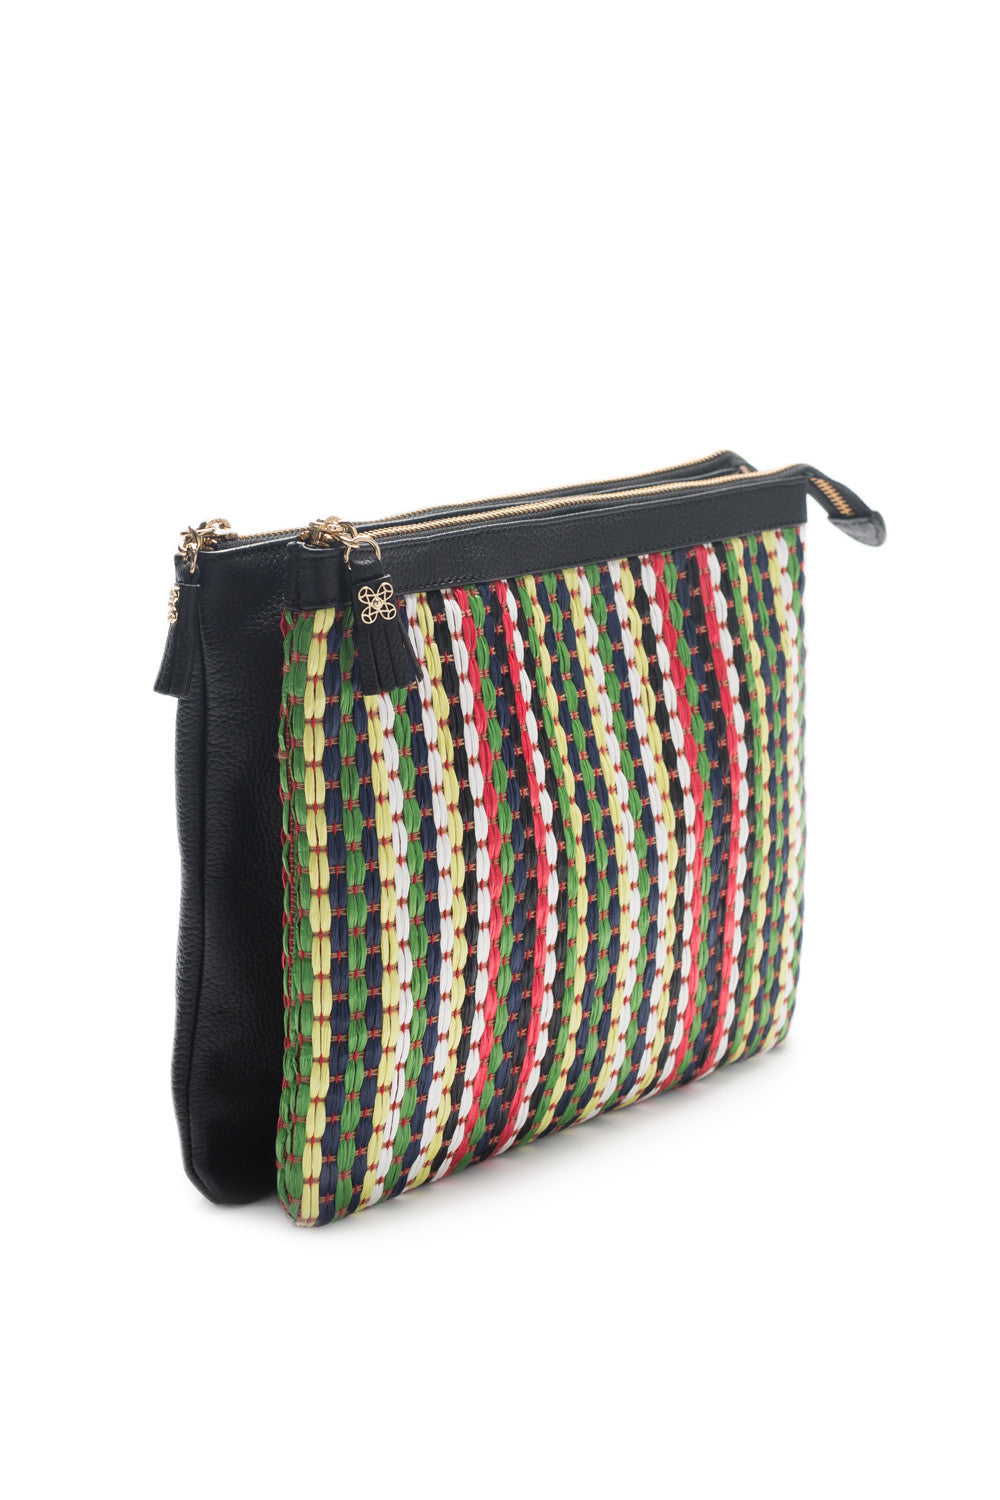 Mel Boteri | Multicolor Raffia and Black Leather 'Abbey' Clutch | Side View